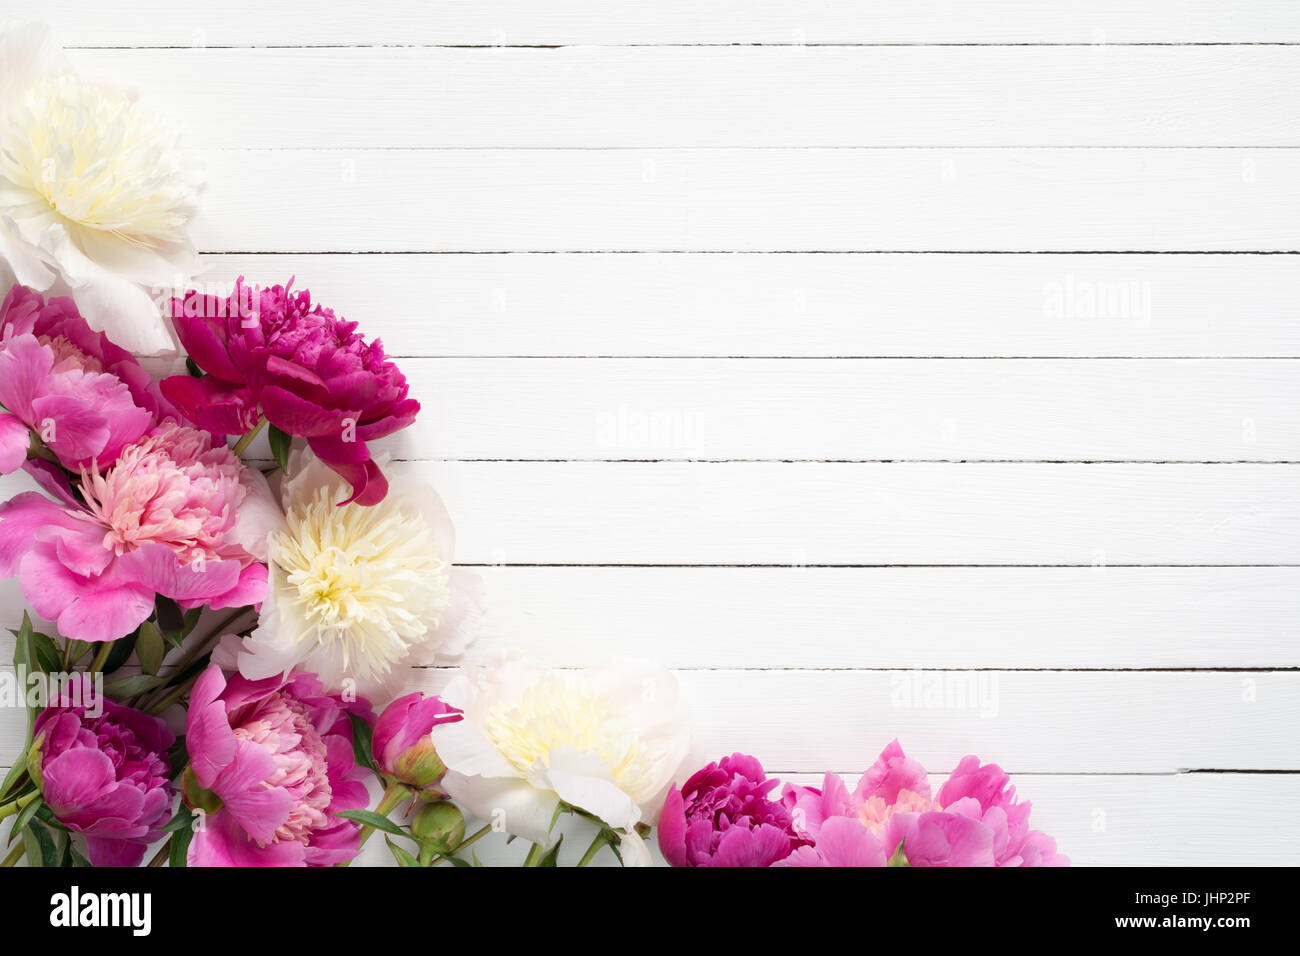 Floral Frame Background With Beautiful Pink Purple And White